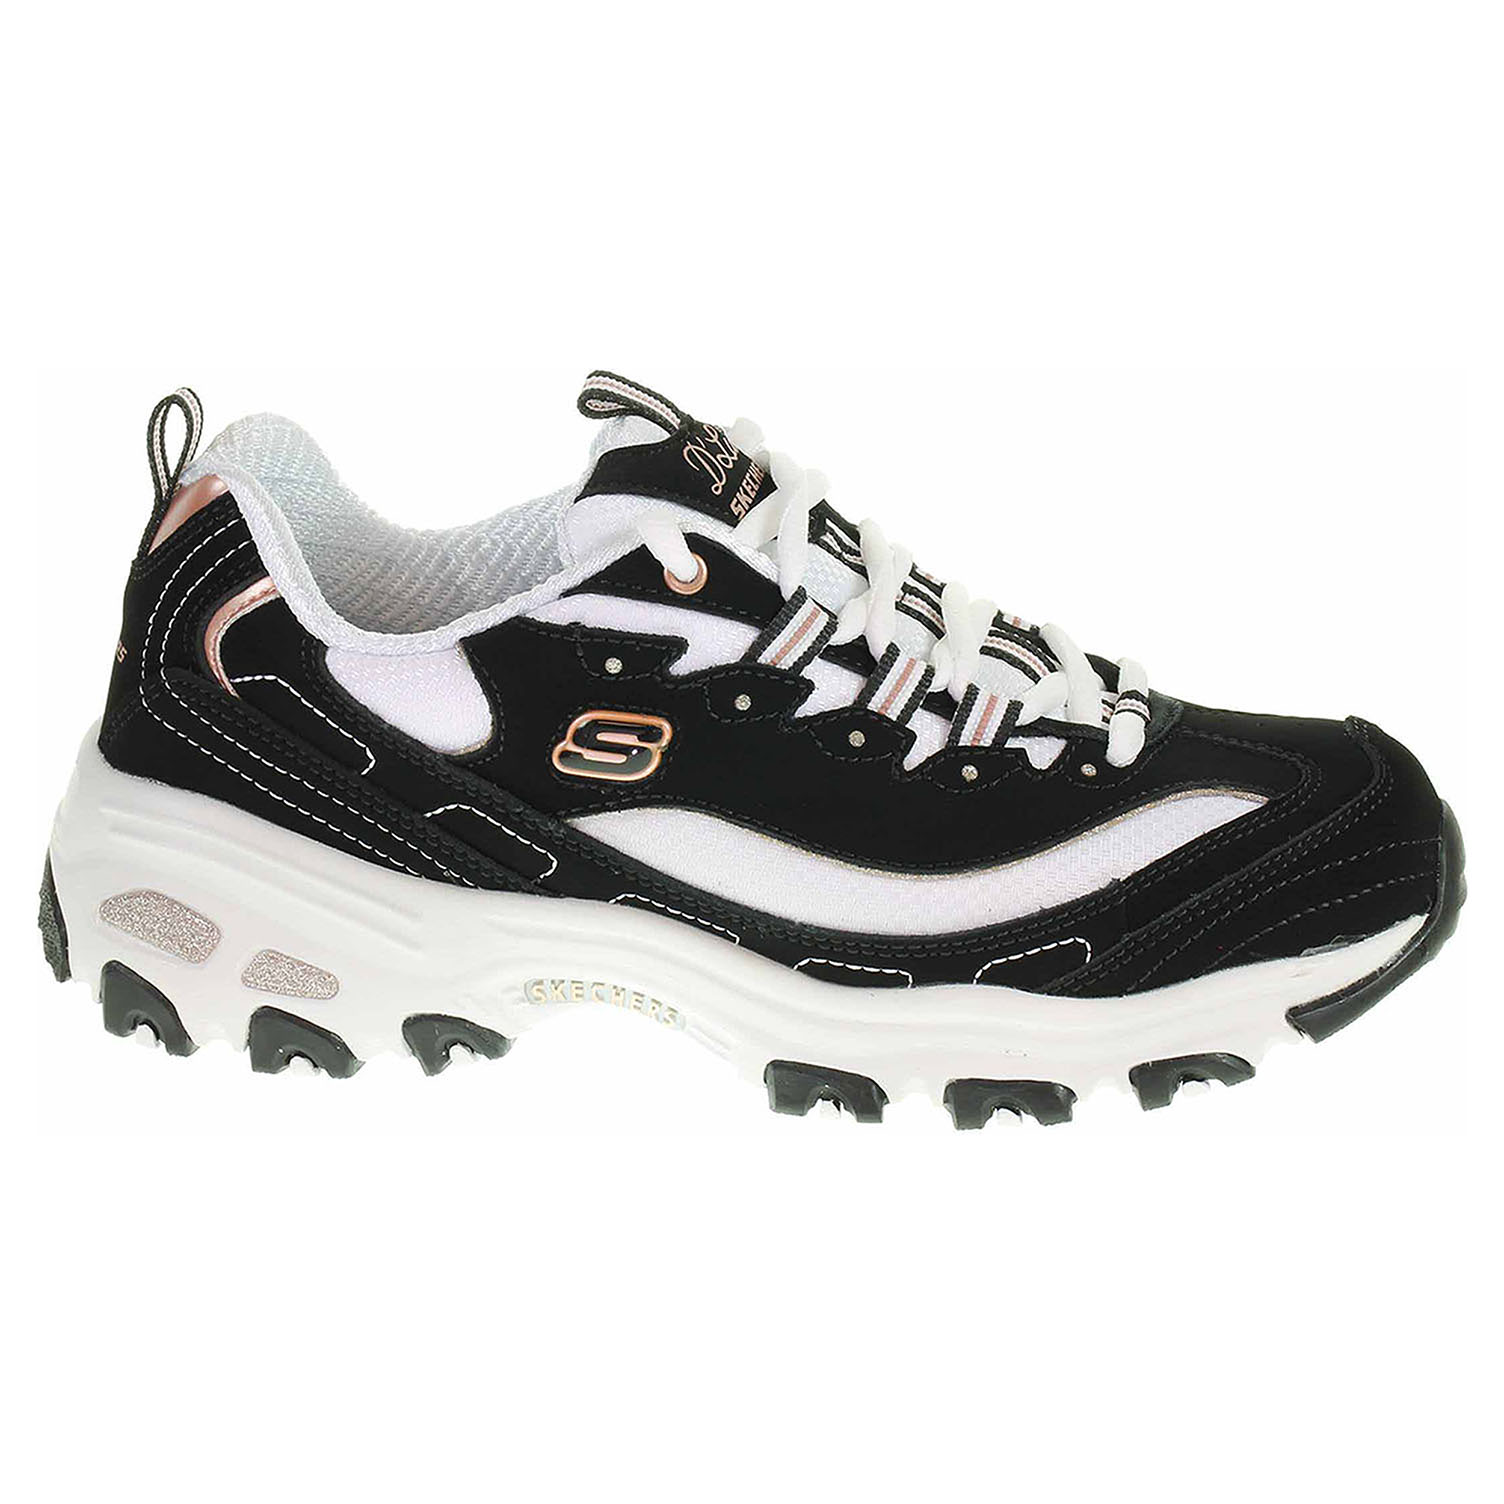 Skechers D´Lites - Devoted Fan black-rose gold 13154 BKRG 39